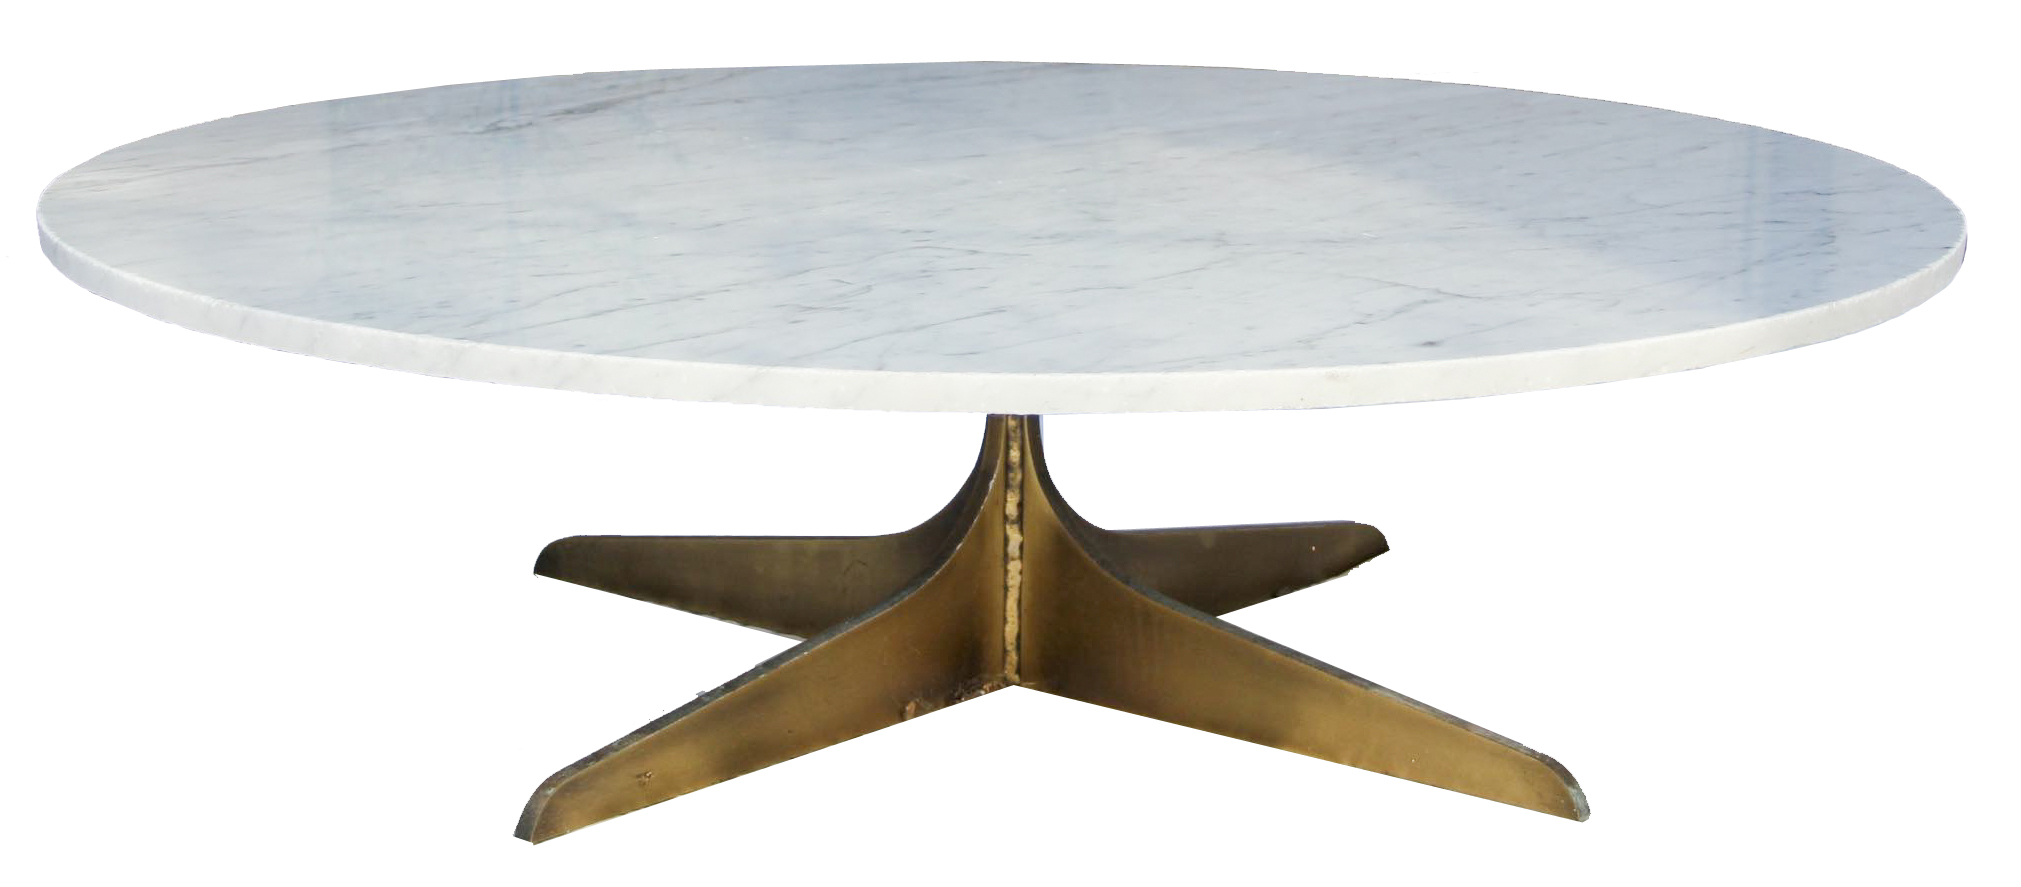 Round Marble Coffee Table With Solid Brass Base